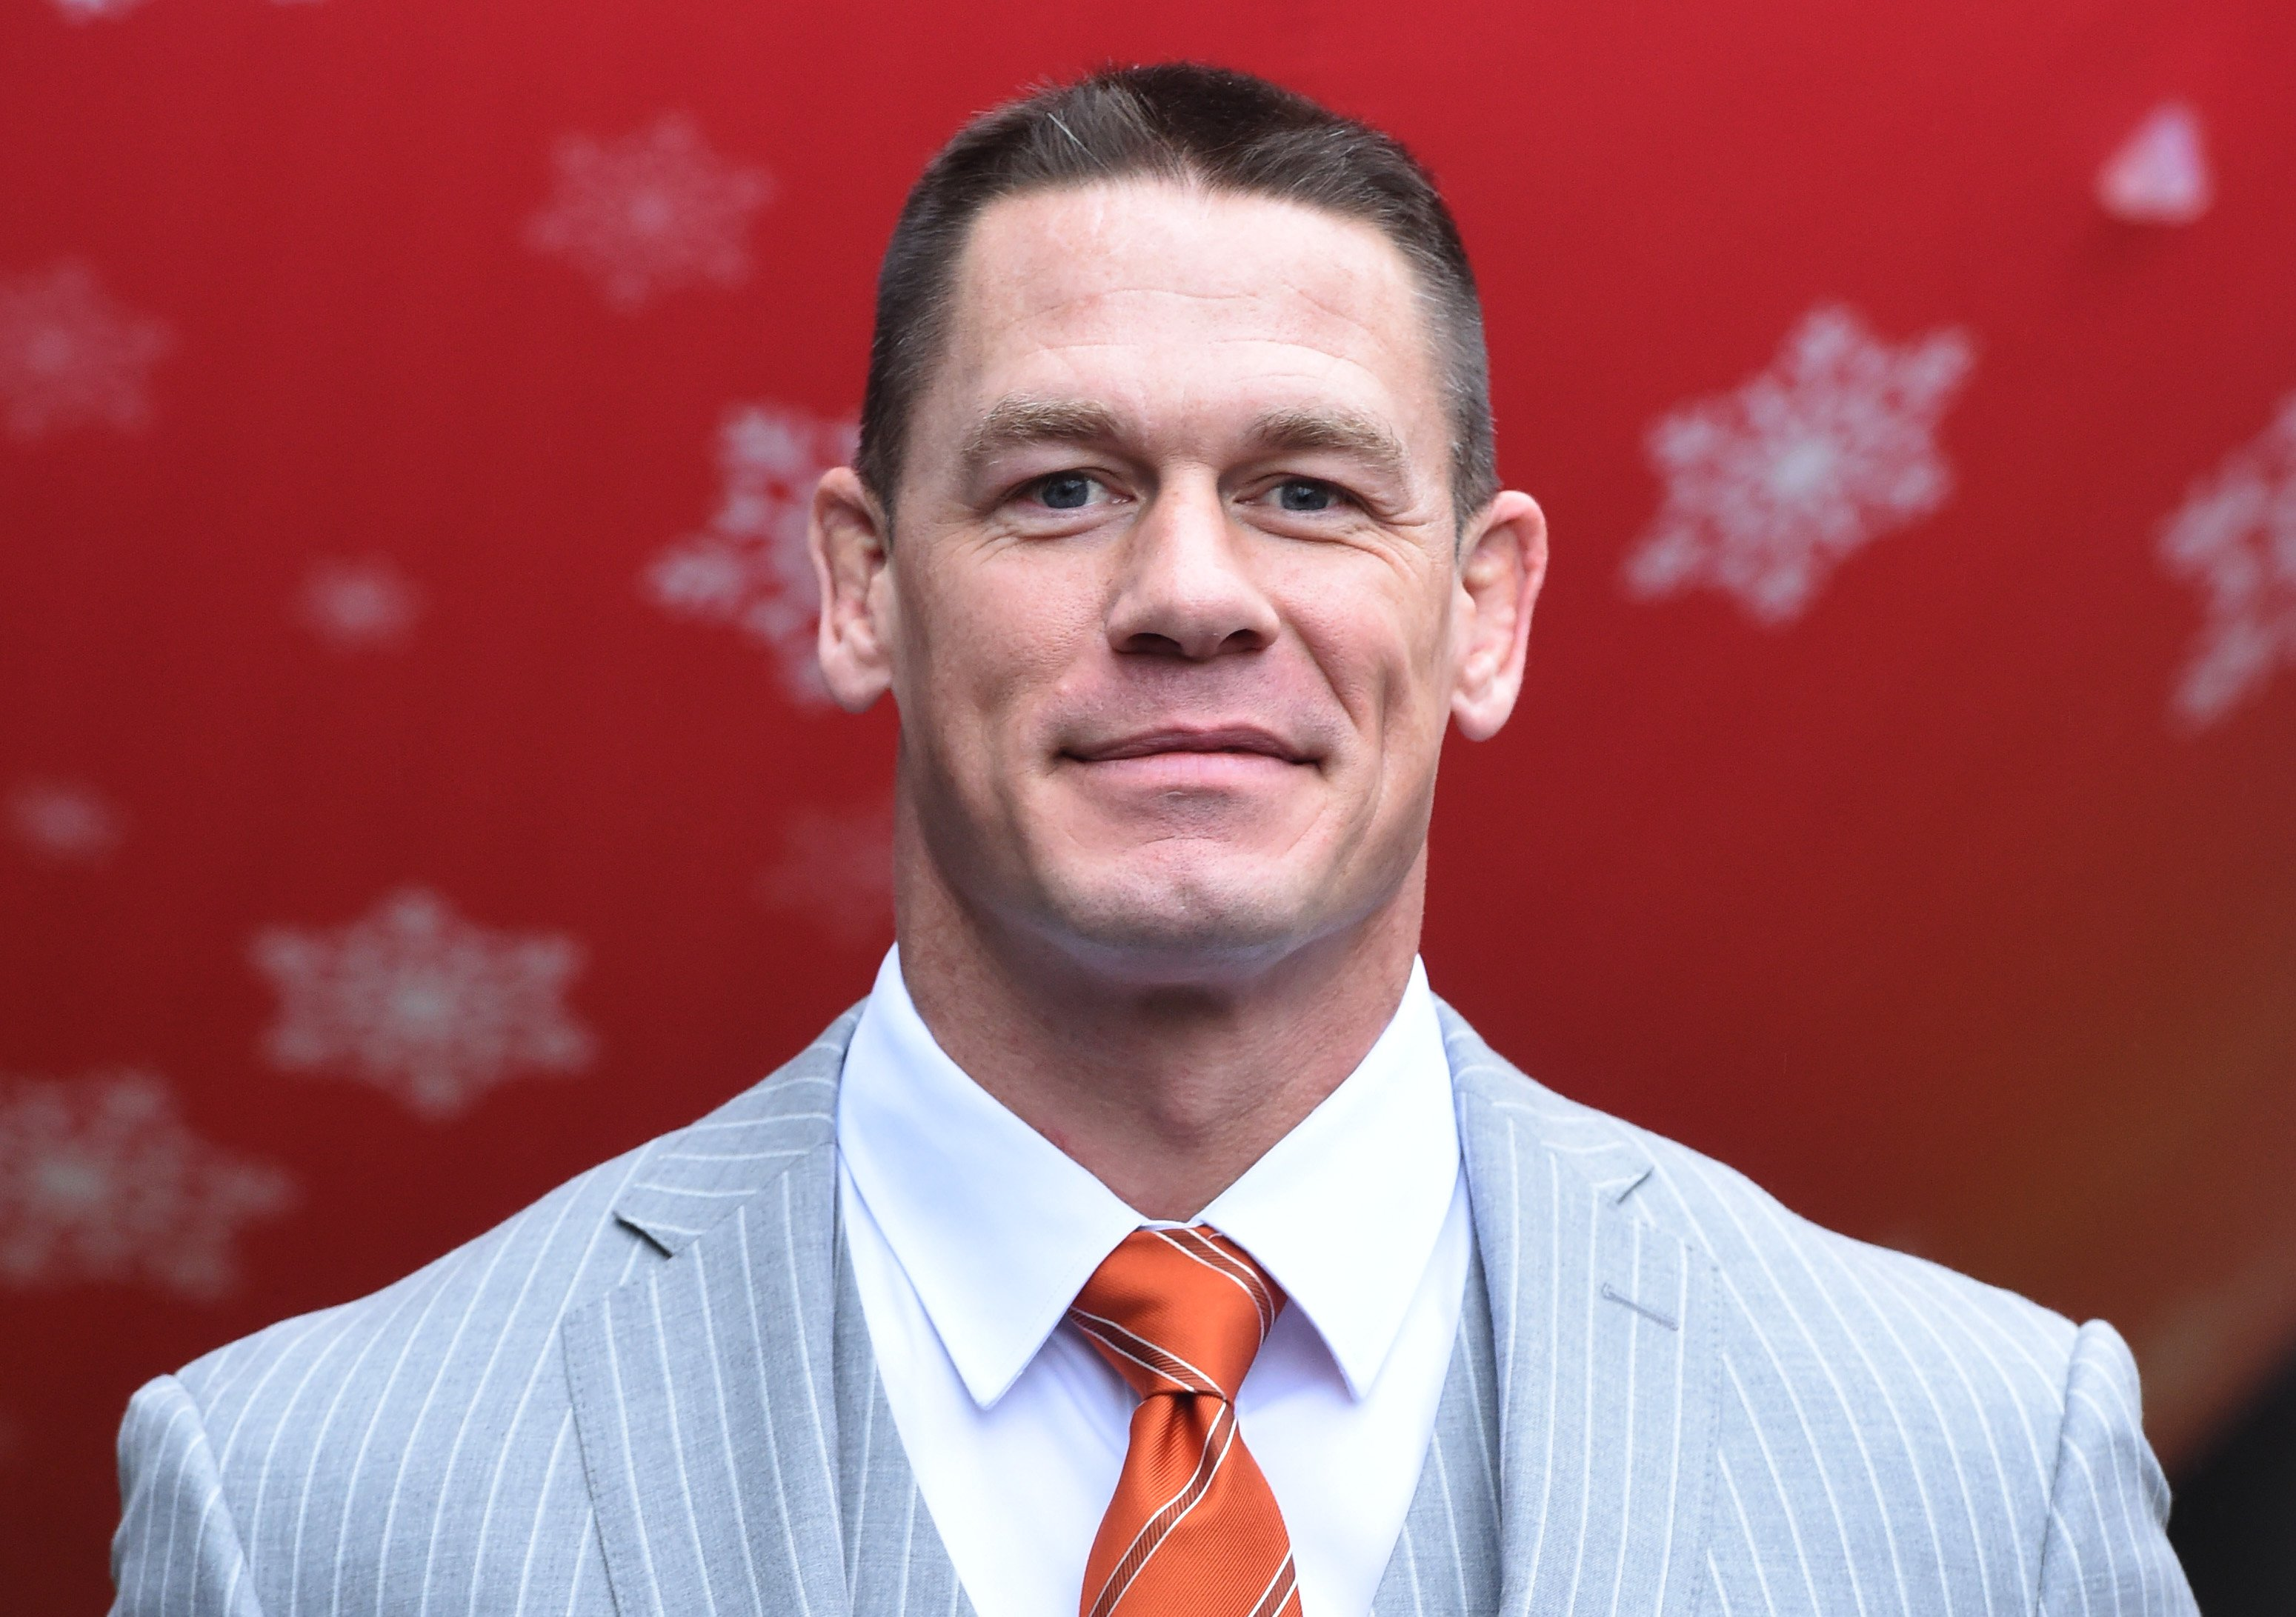 John Cena attends the 'Ferdinand' special screening on December 3, 2017 in London, England | Photo: Getty Images